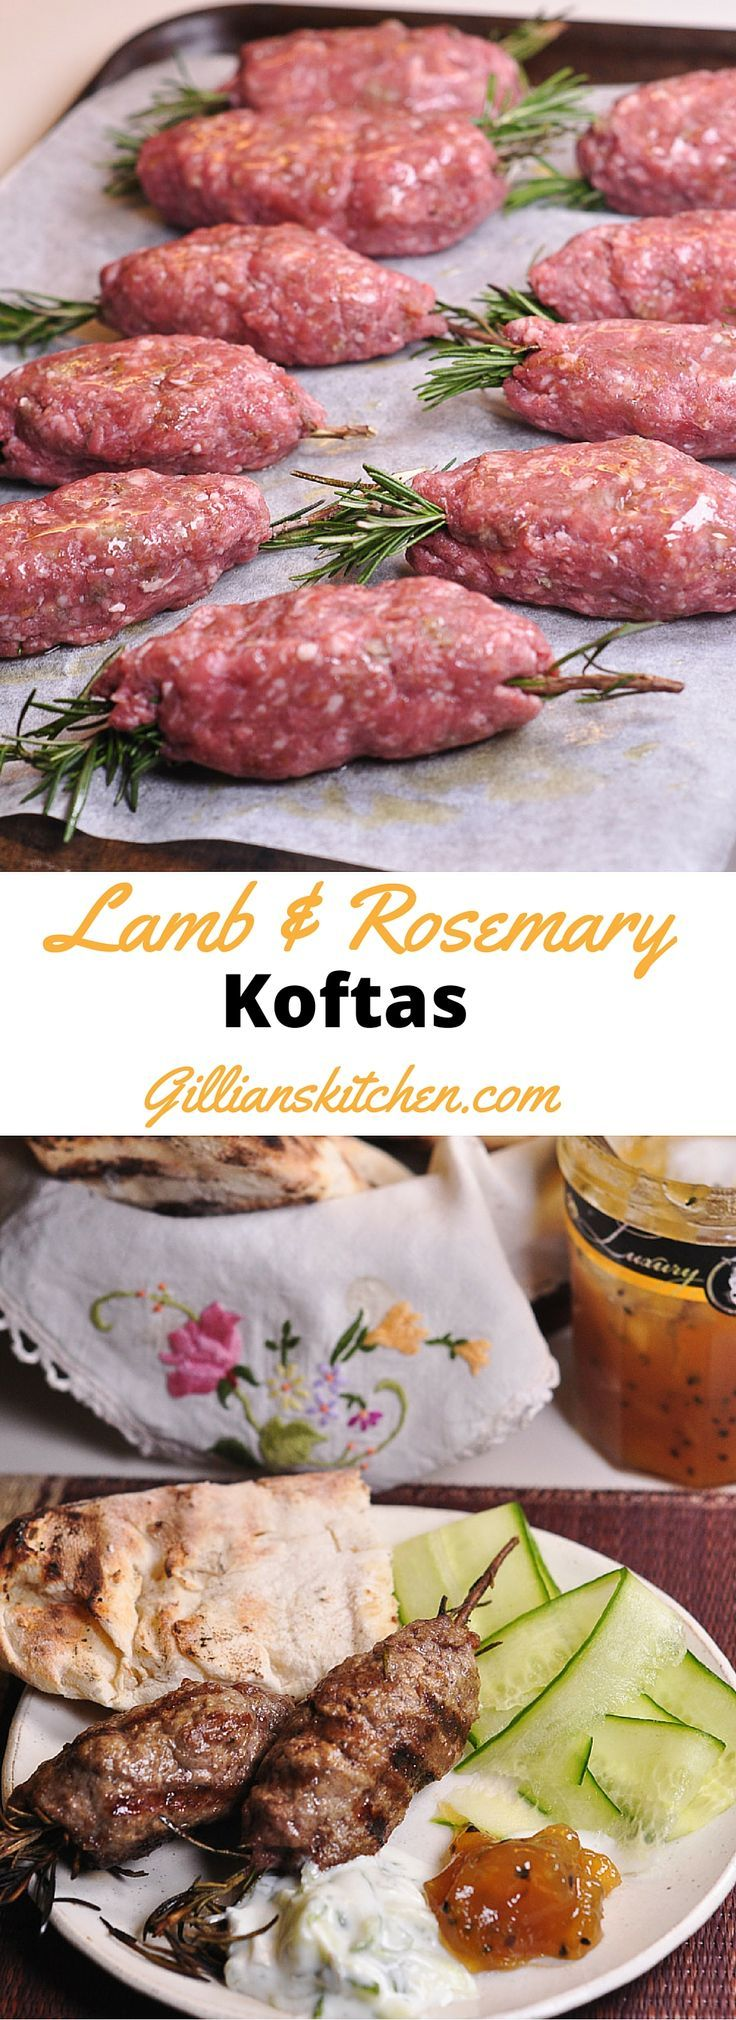 Lamb & Rosemary Koftas long pin